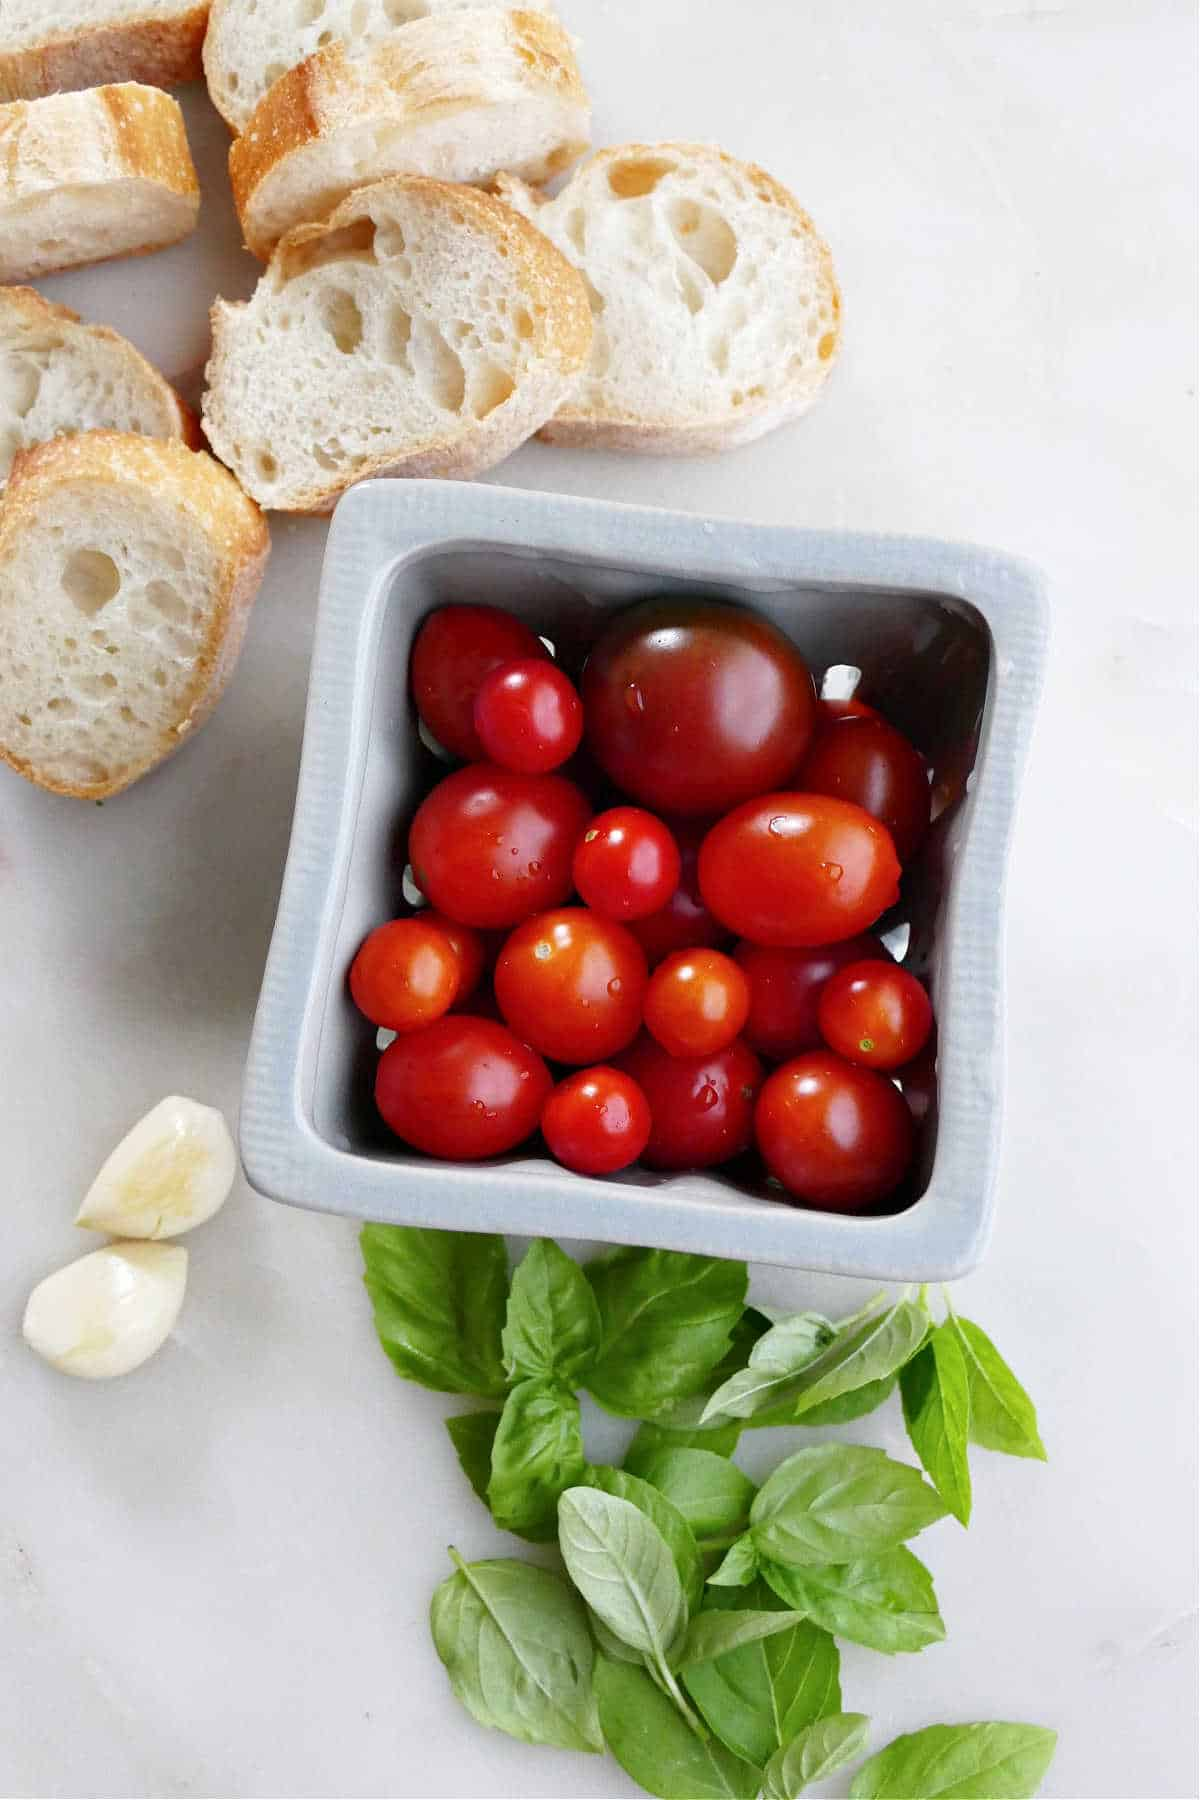 baguette slices, cherry tomatoes, garlic, and basil next to each other on a counter